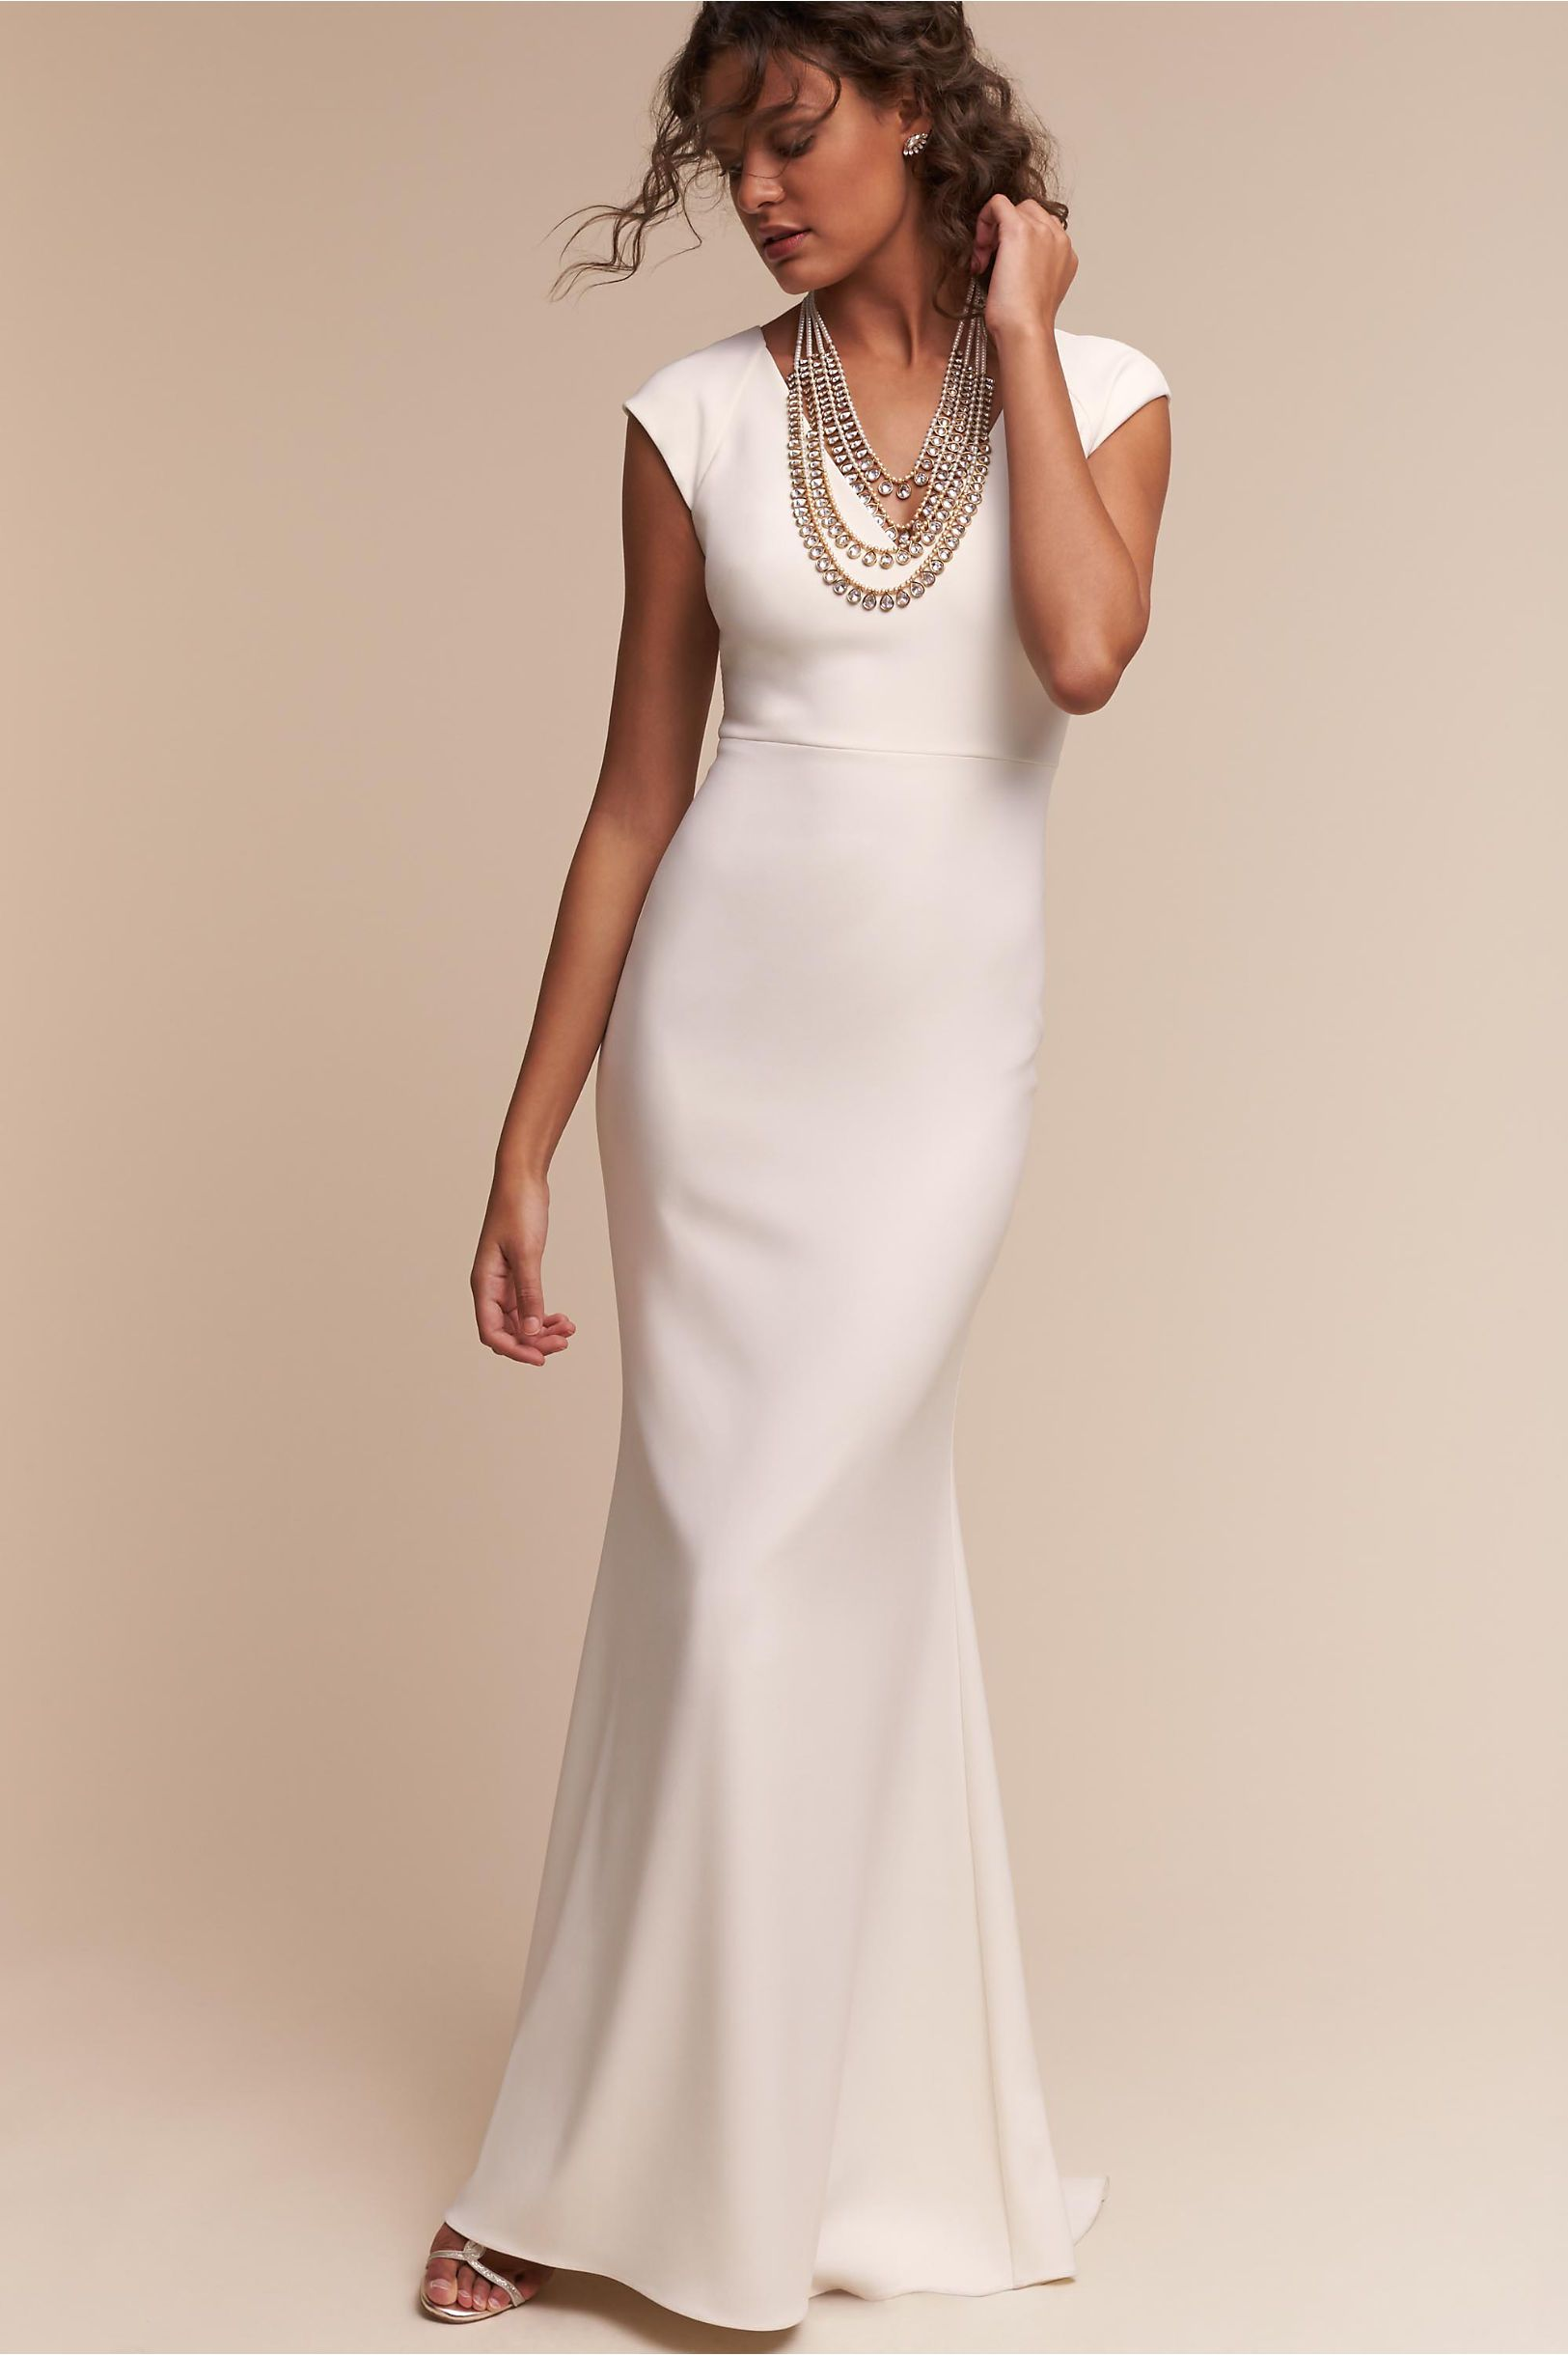 BHLDN\'s Badgley Mischka Sawyer Gown in Ivory | Badgley mischka ...